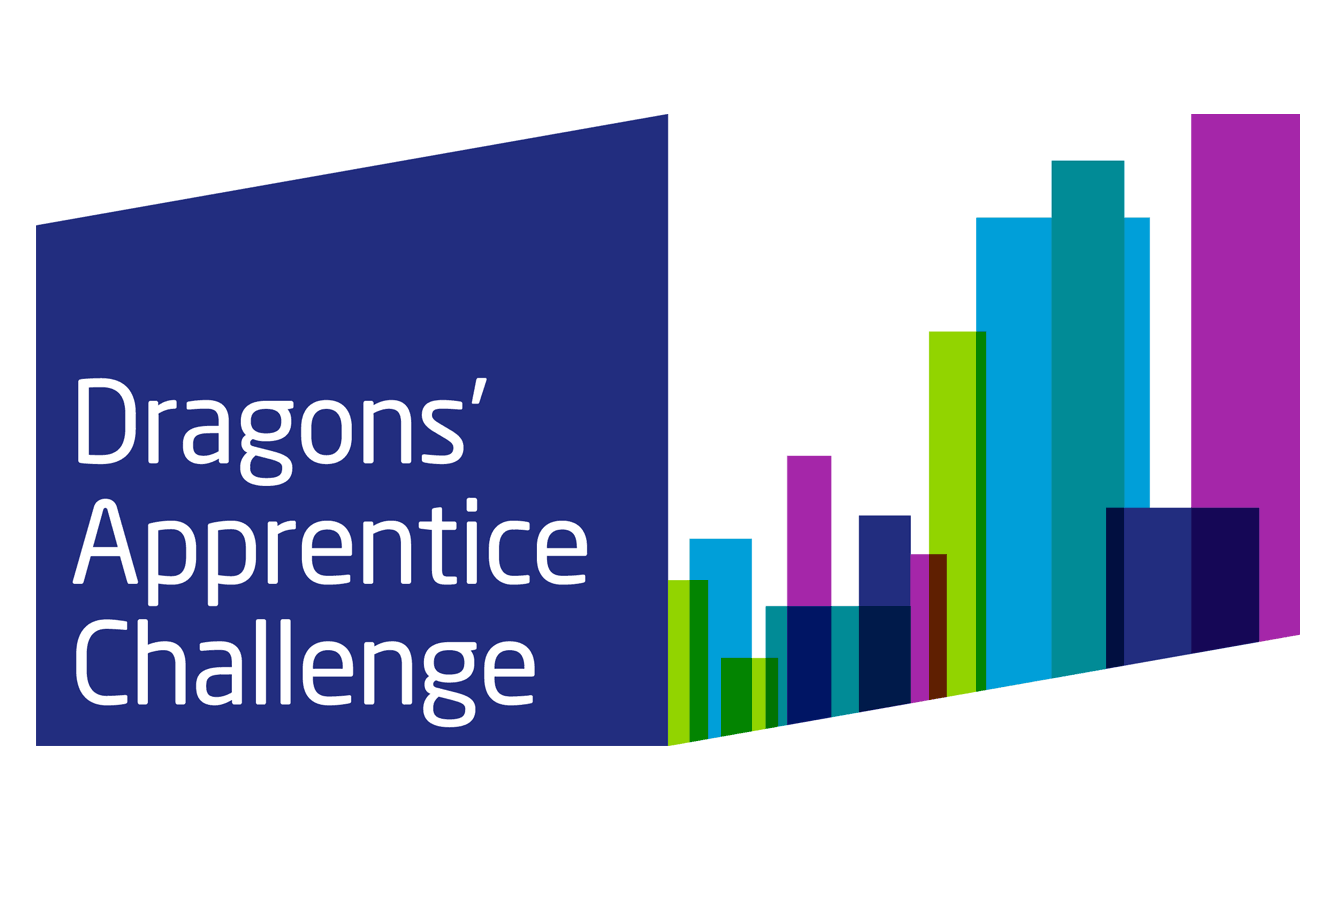 Dragons Apprentice Challenge